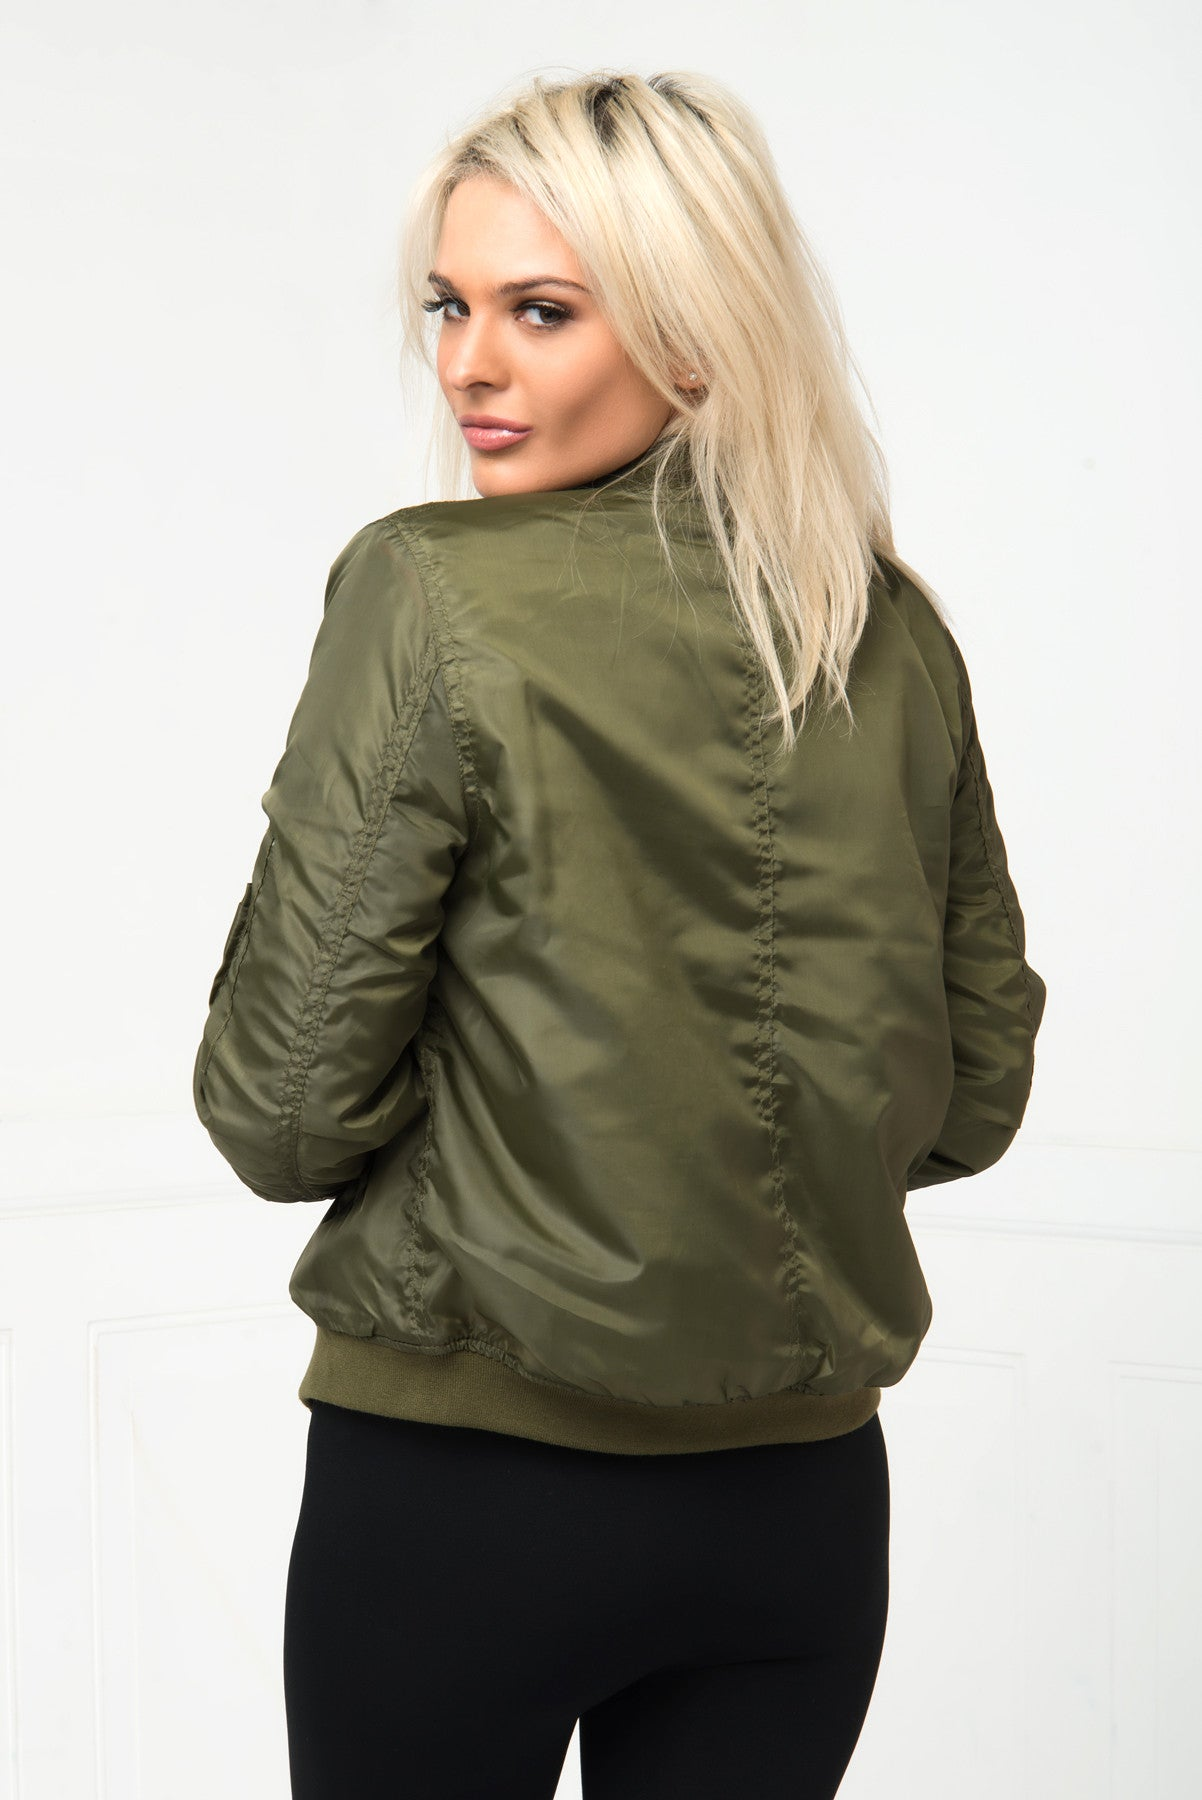 Neutral Zone Jacket - Fashion Effect Store  - 3